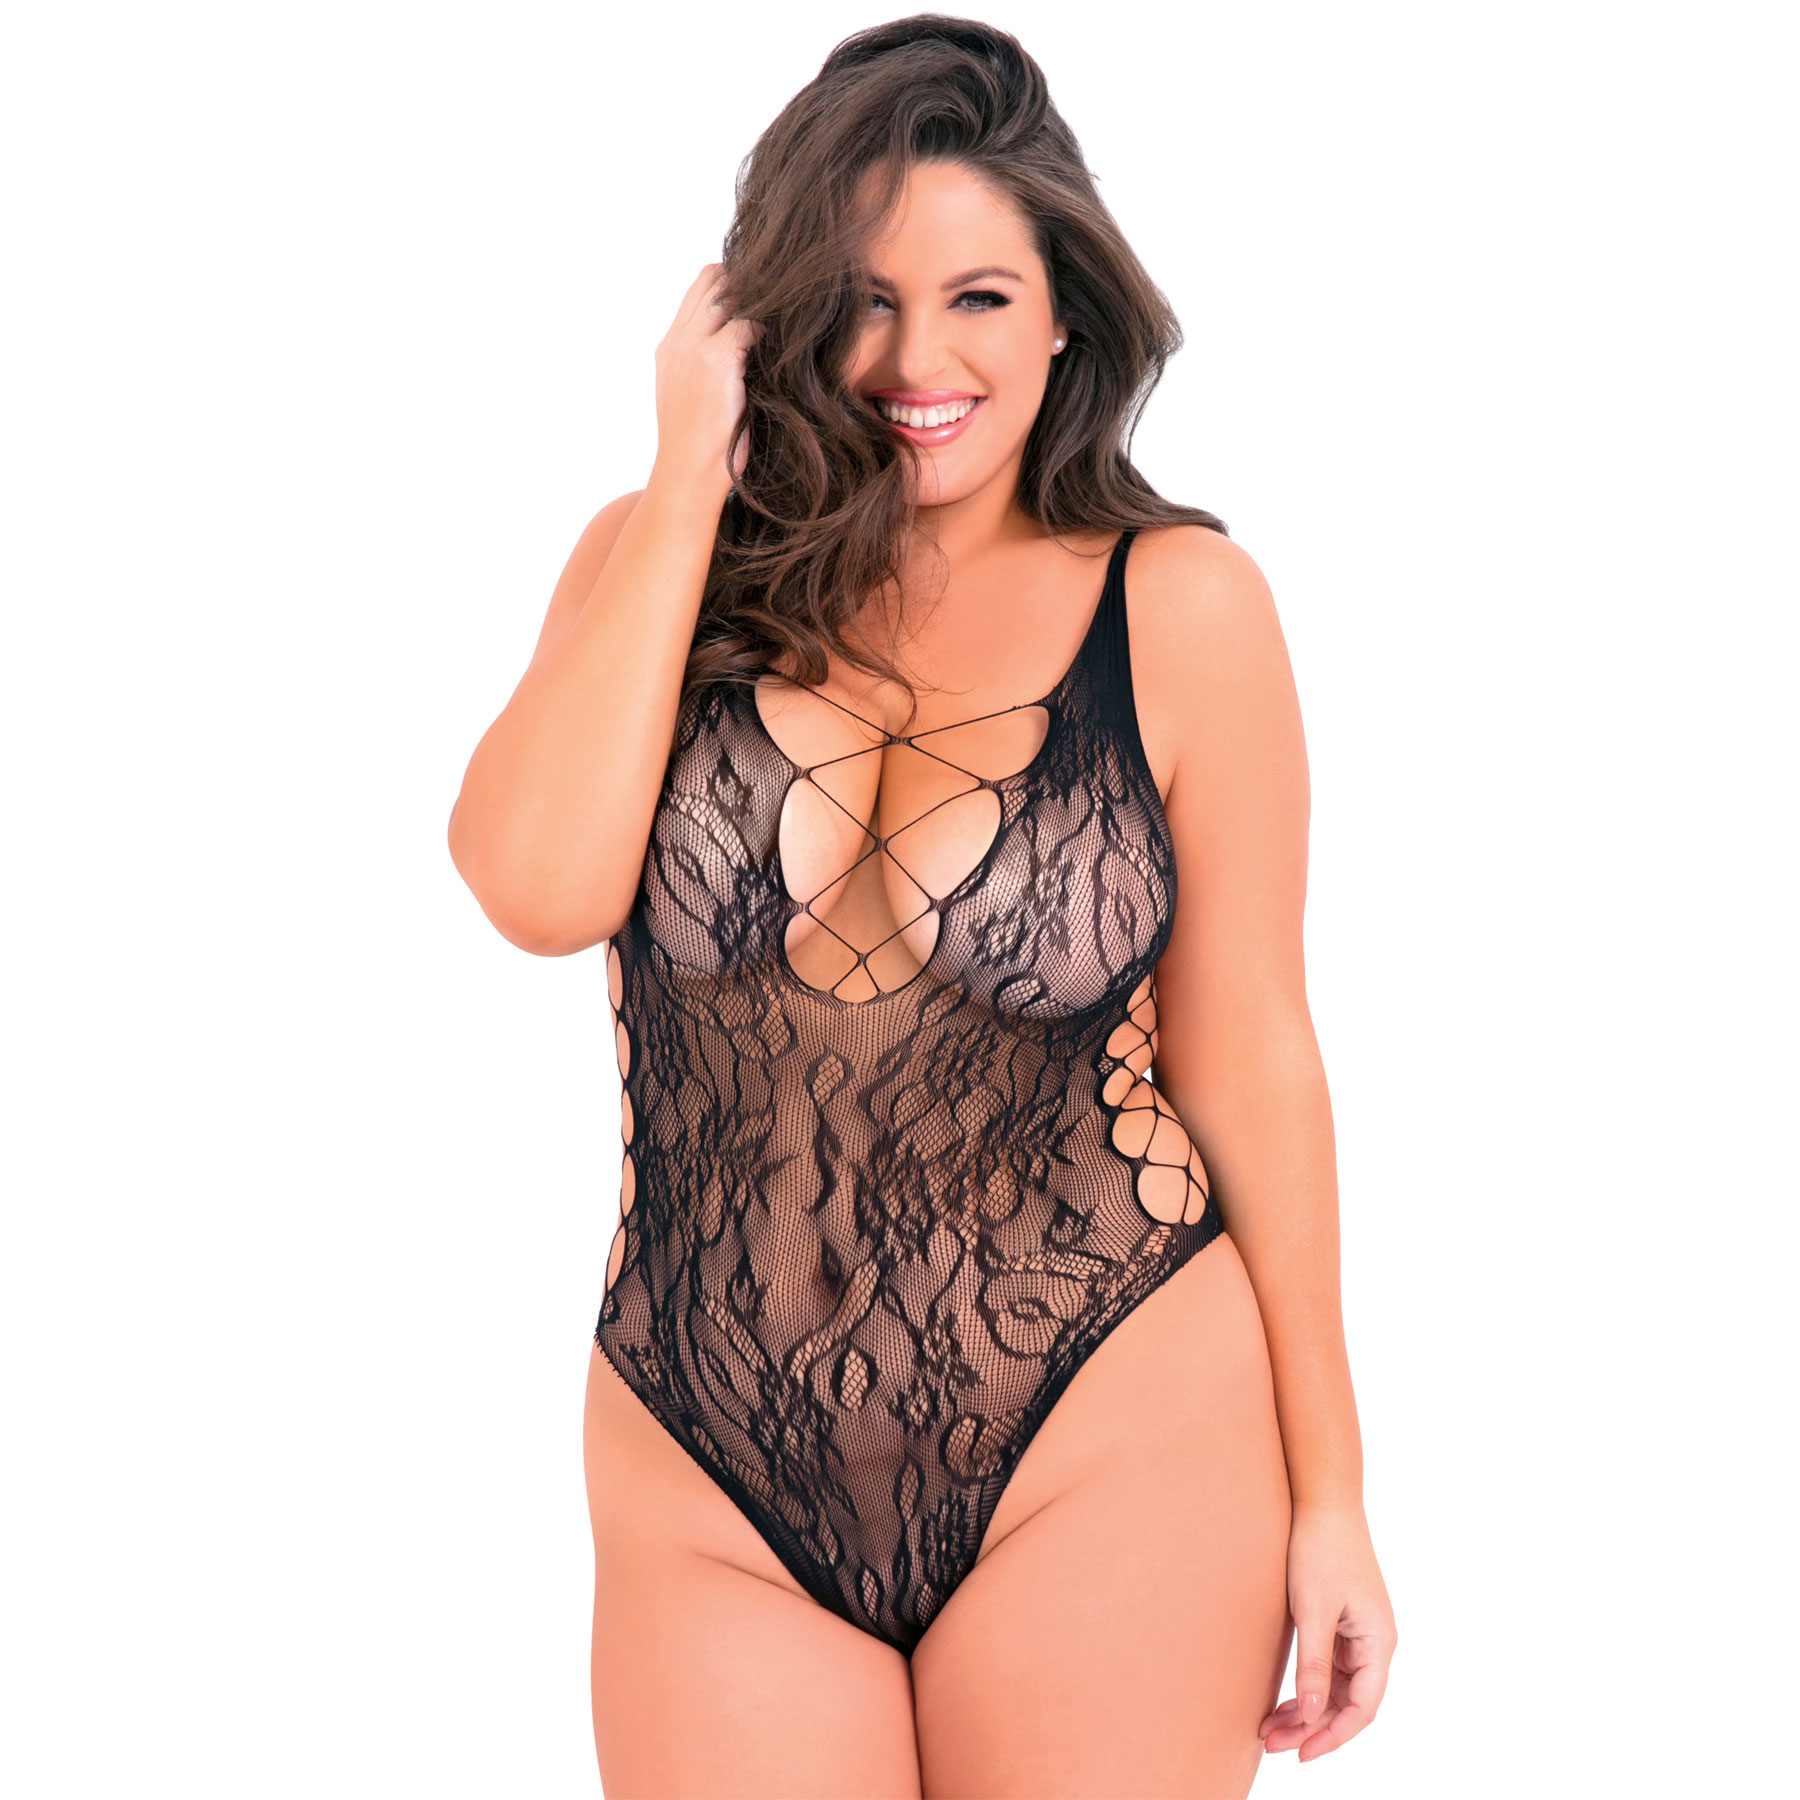 cb9caff809b Laced Up Sexy Bodysuit - Women's Lingerie - Adam & Eve